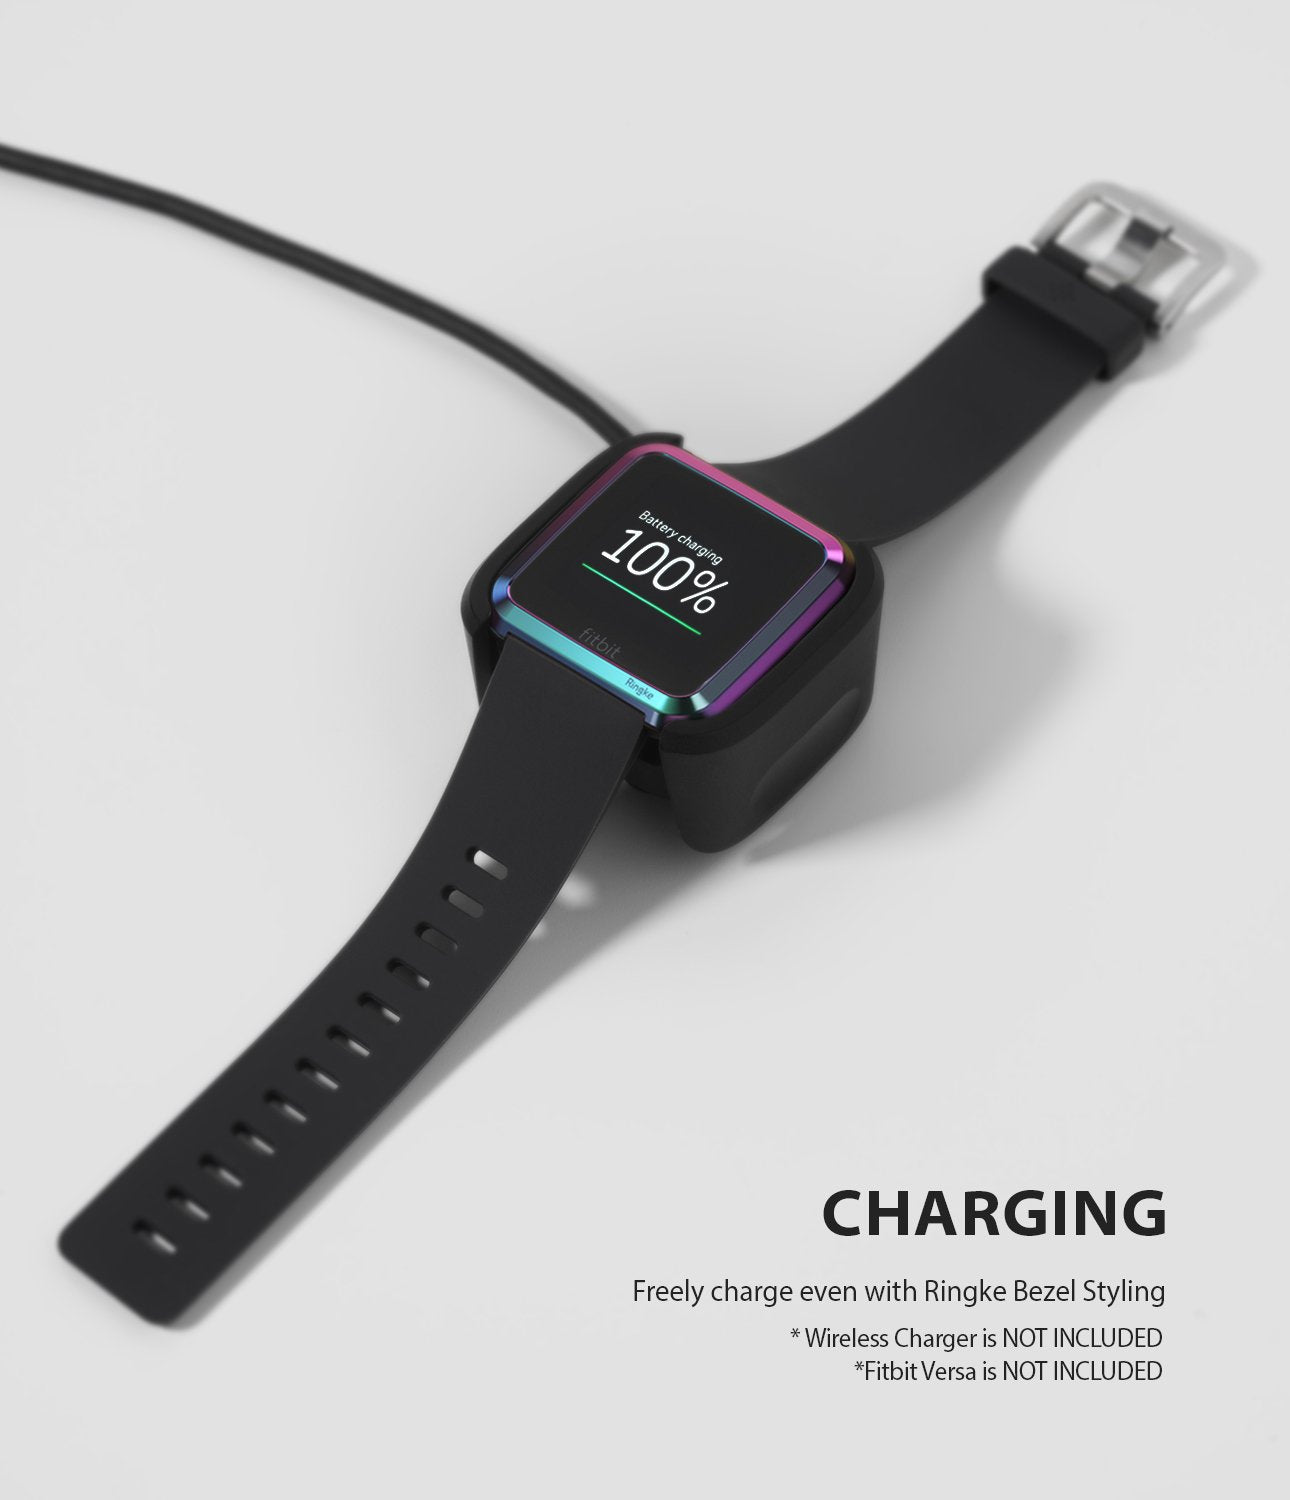 Ringke Bezel Styling Designed for Fitbit Versa Case Cover, Neo Ghrome- FW-V-08, wireless charger compatible